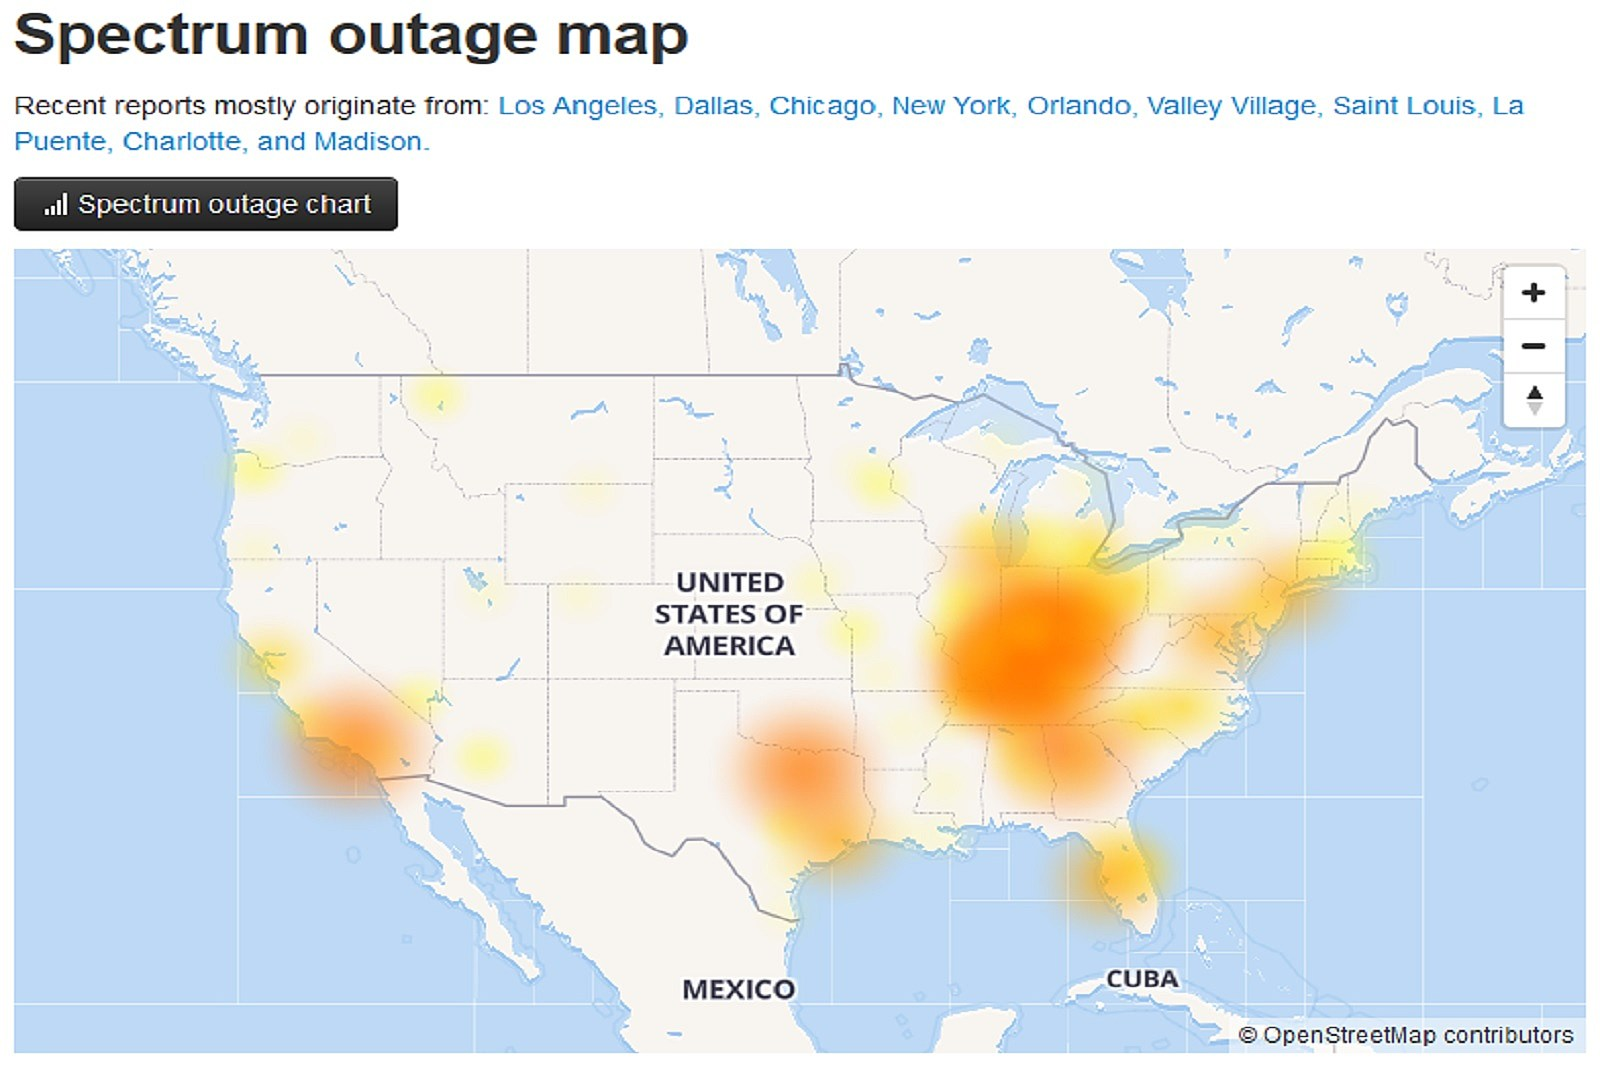 Spectrum Cable Outage Phone Number - Somurich.com on charter network map, charter cable service map, charter communications map, charter internet service, charter service area, charter cable availability map, frontier communications wisconsin map, charter coverage map,